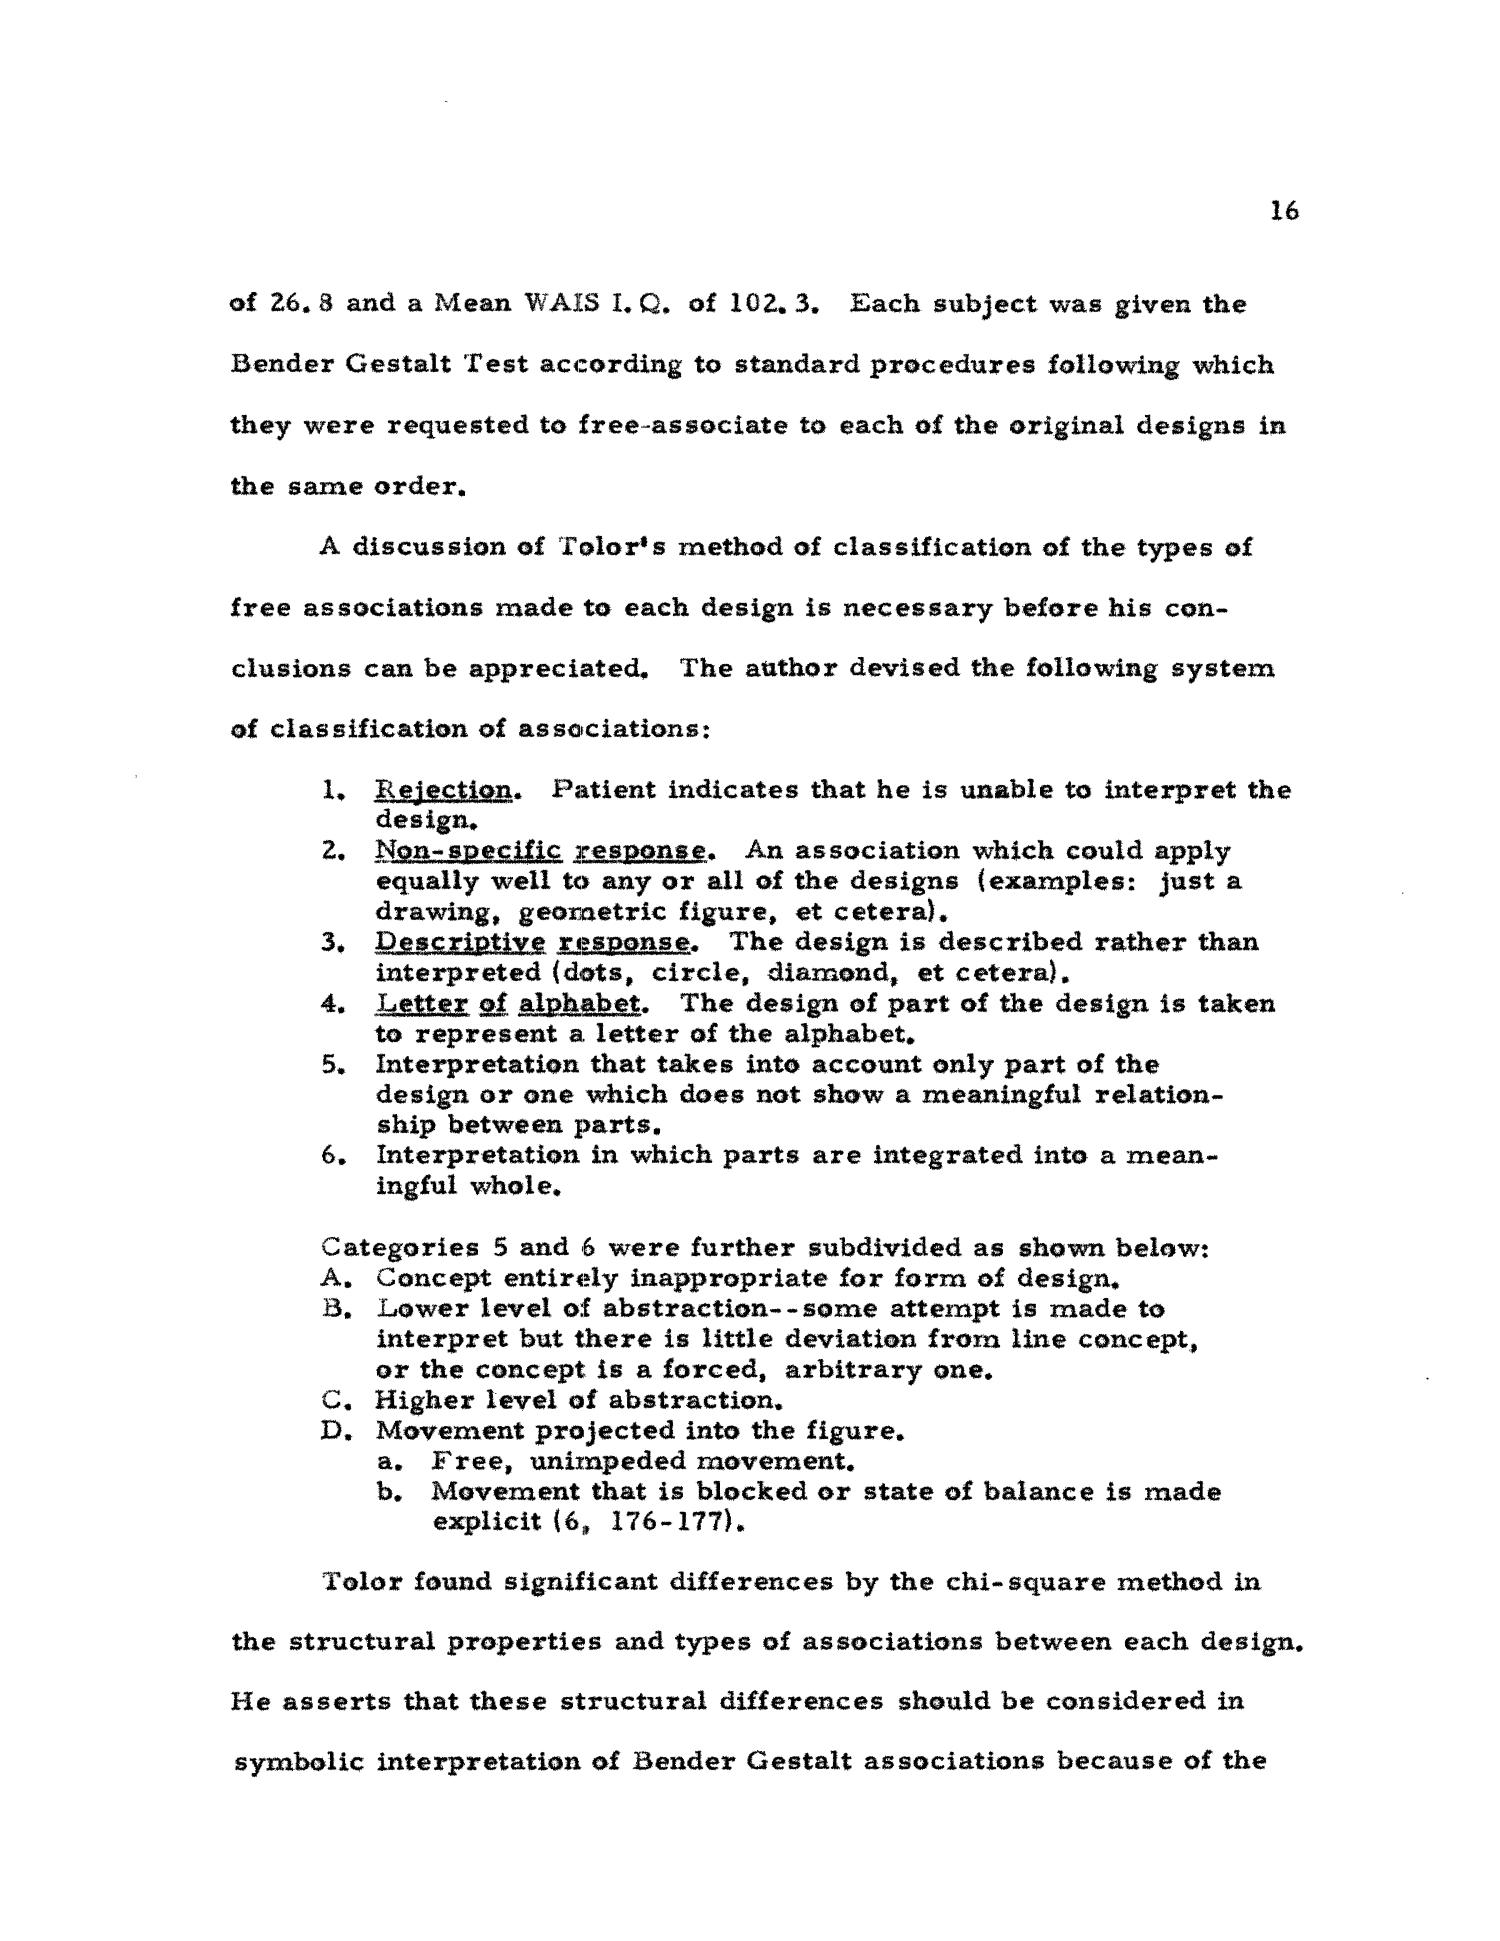 Stimulus Values of the Bender Visual Motor Gestalt Test Designs - Page 16 - Digital Library